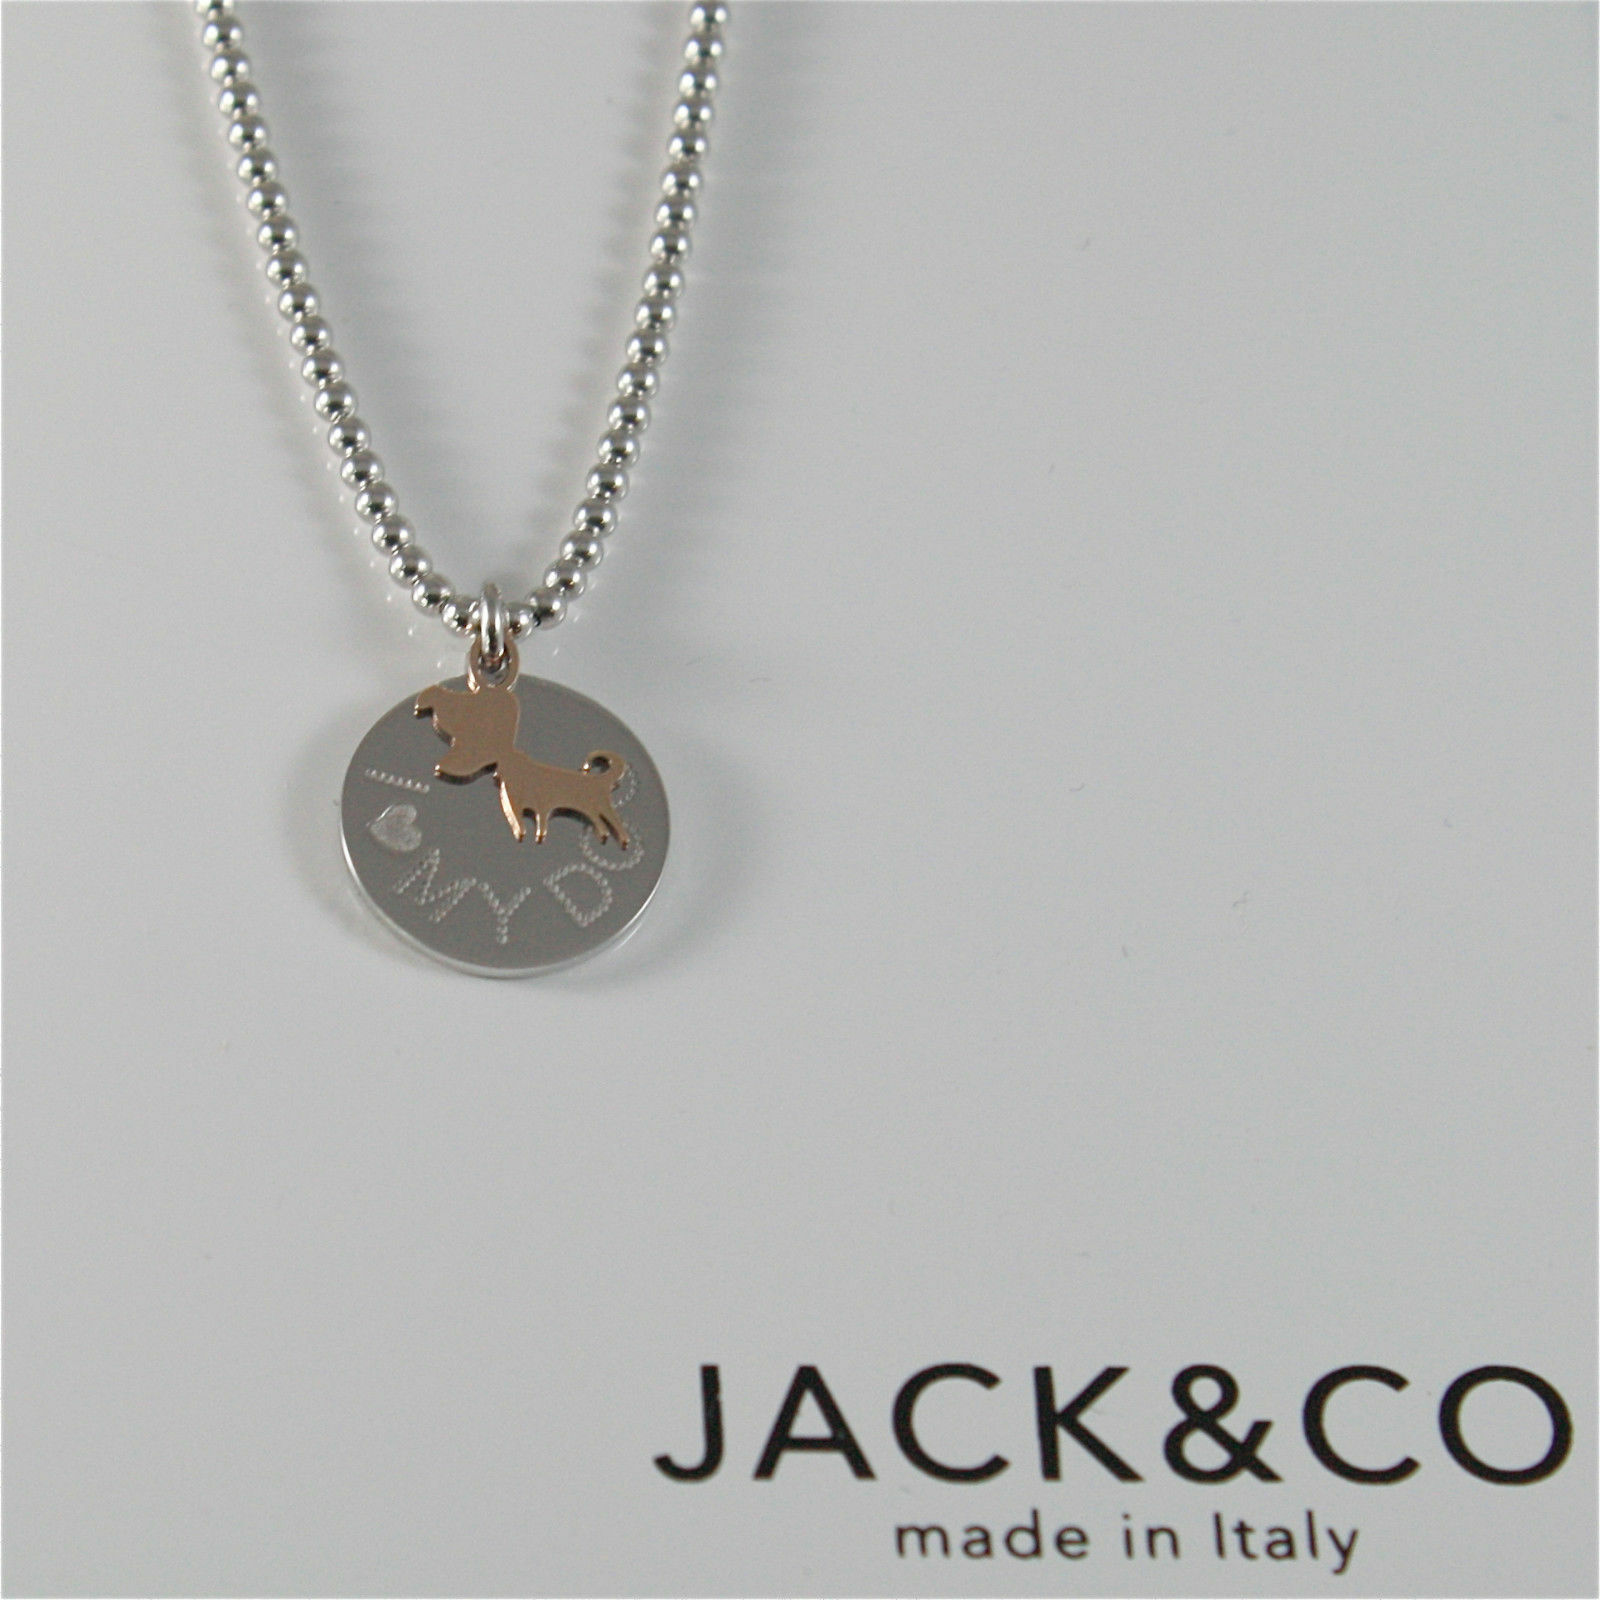 Necklace to Balls Silver 925 Jack&co with Dog Jack in Rose Gold 9KT JCN0549